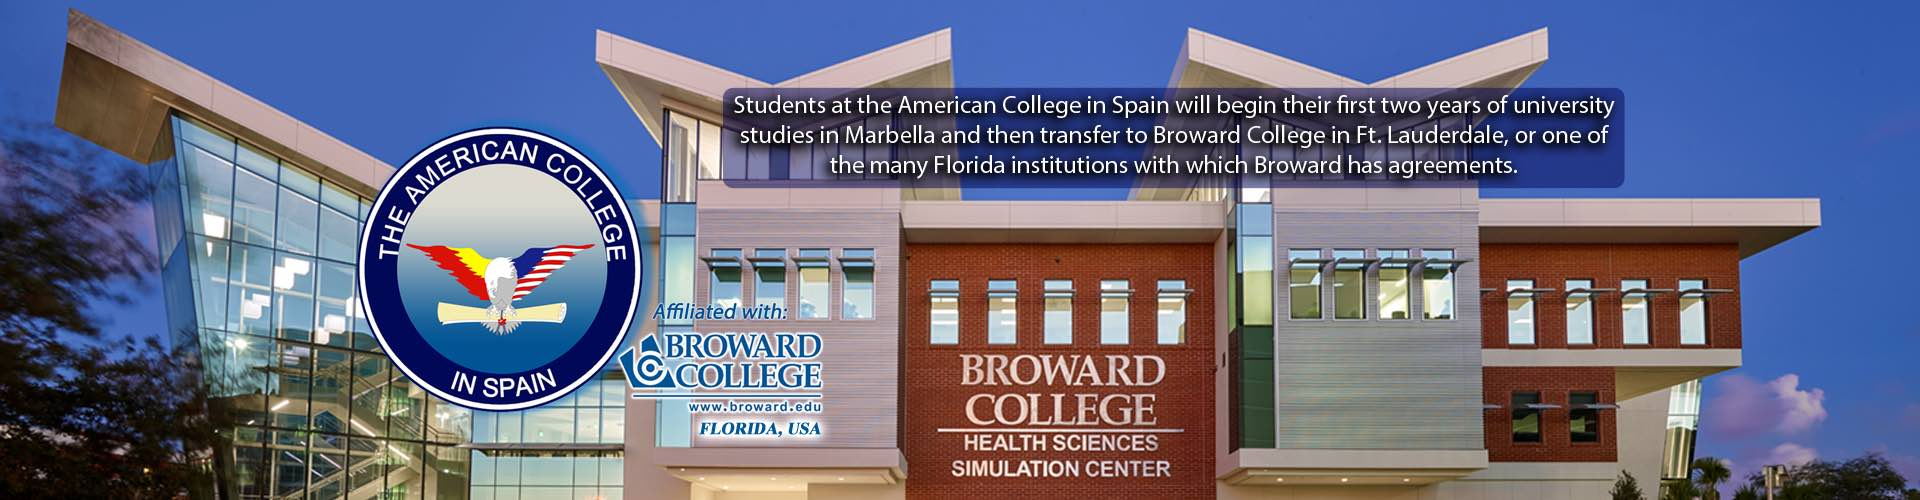 American College in Spain